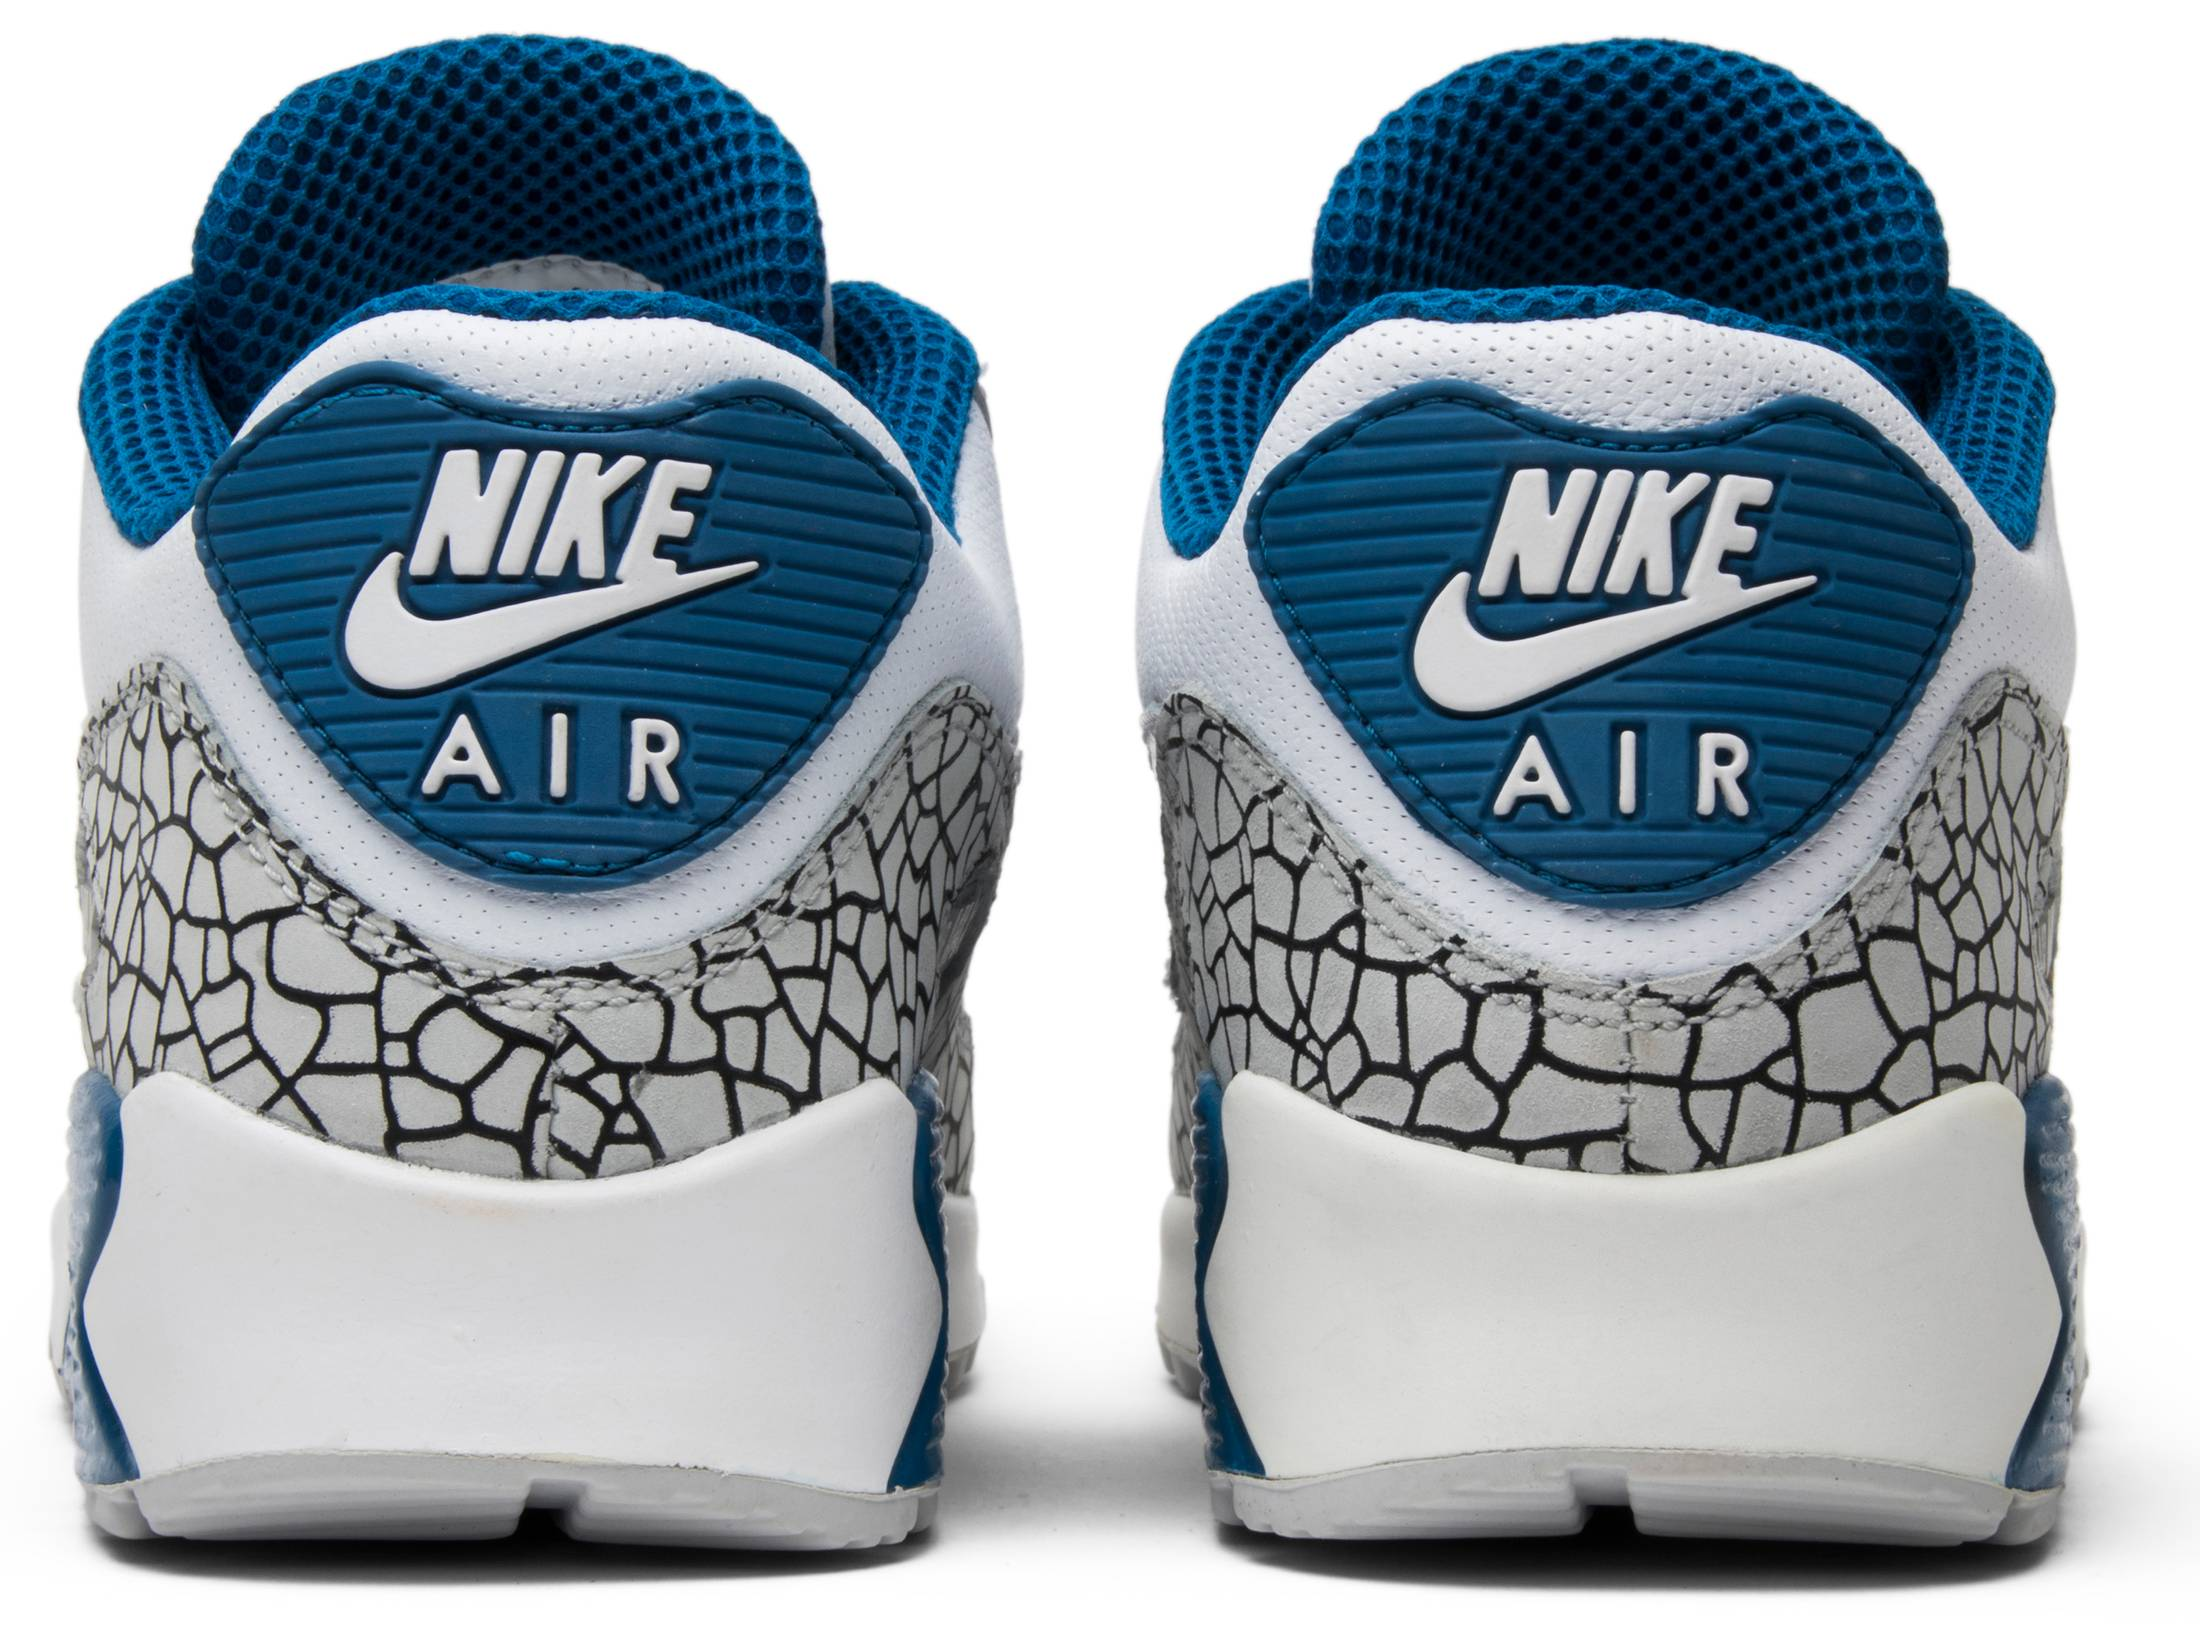 Nike Air Max 90 Premium Hufquake - Kick Game